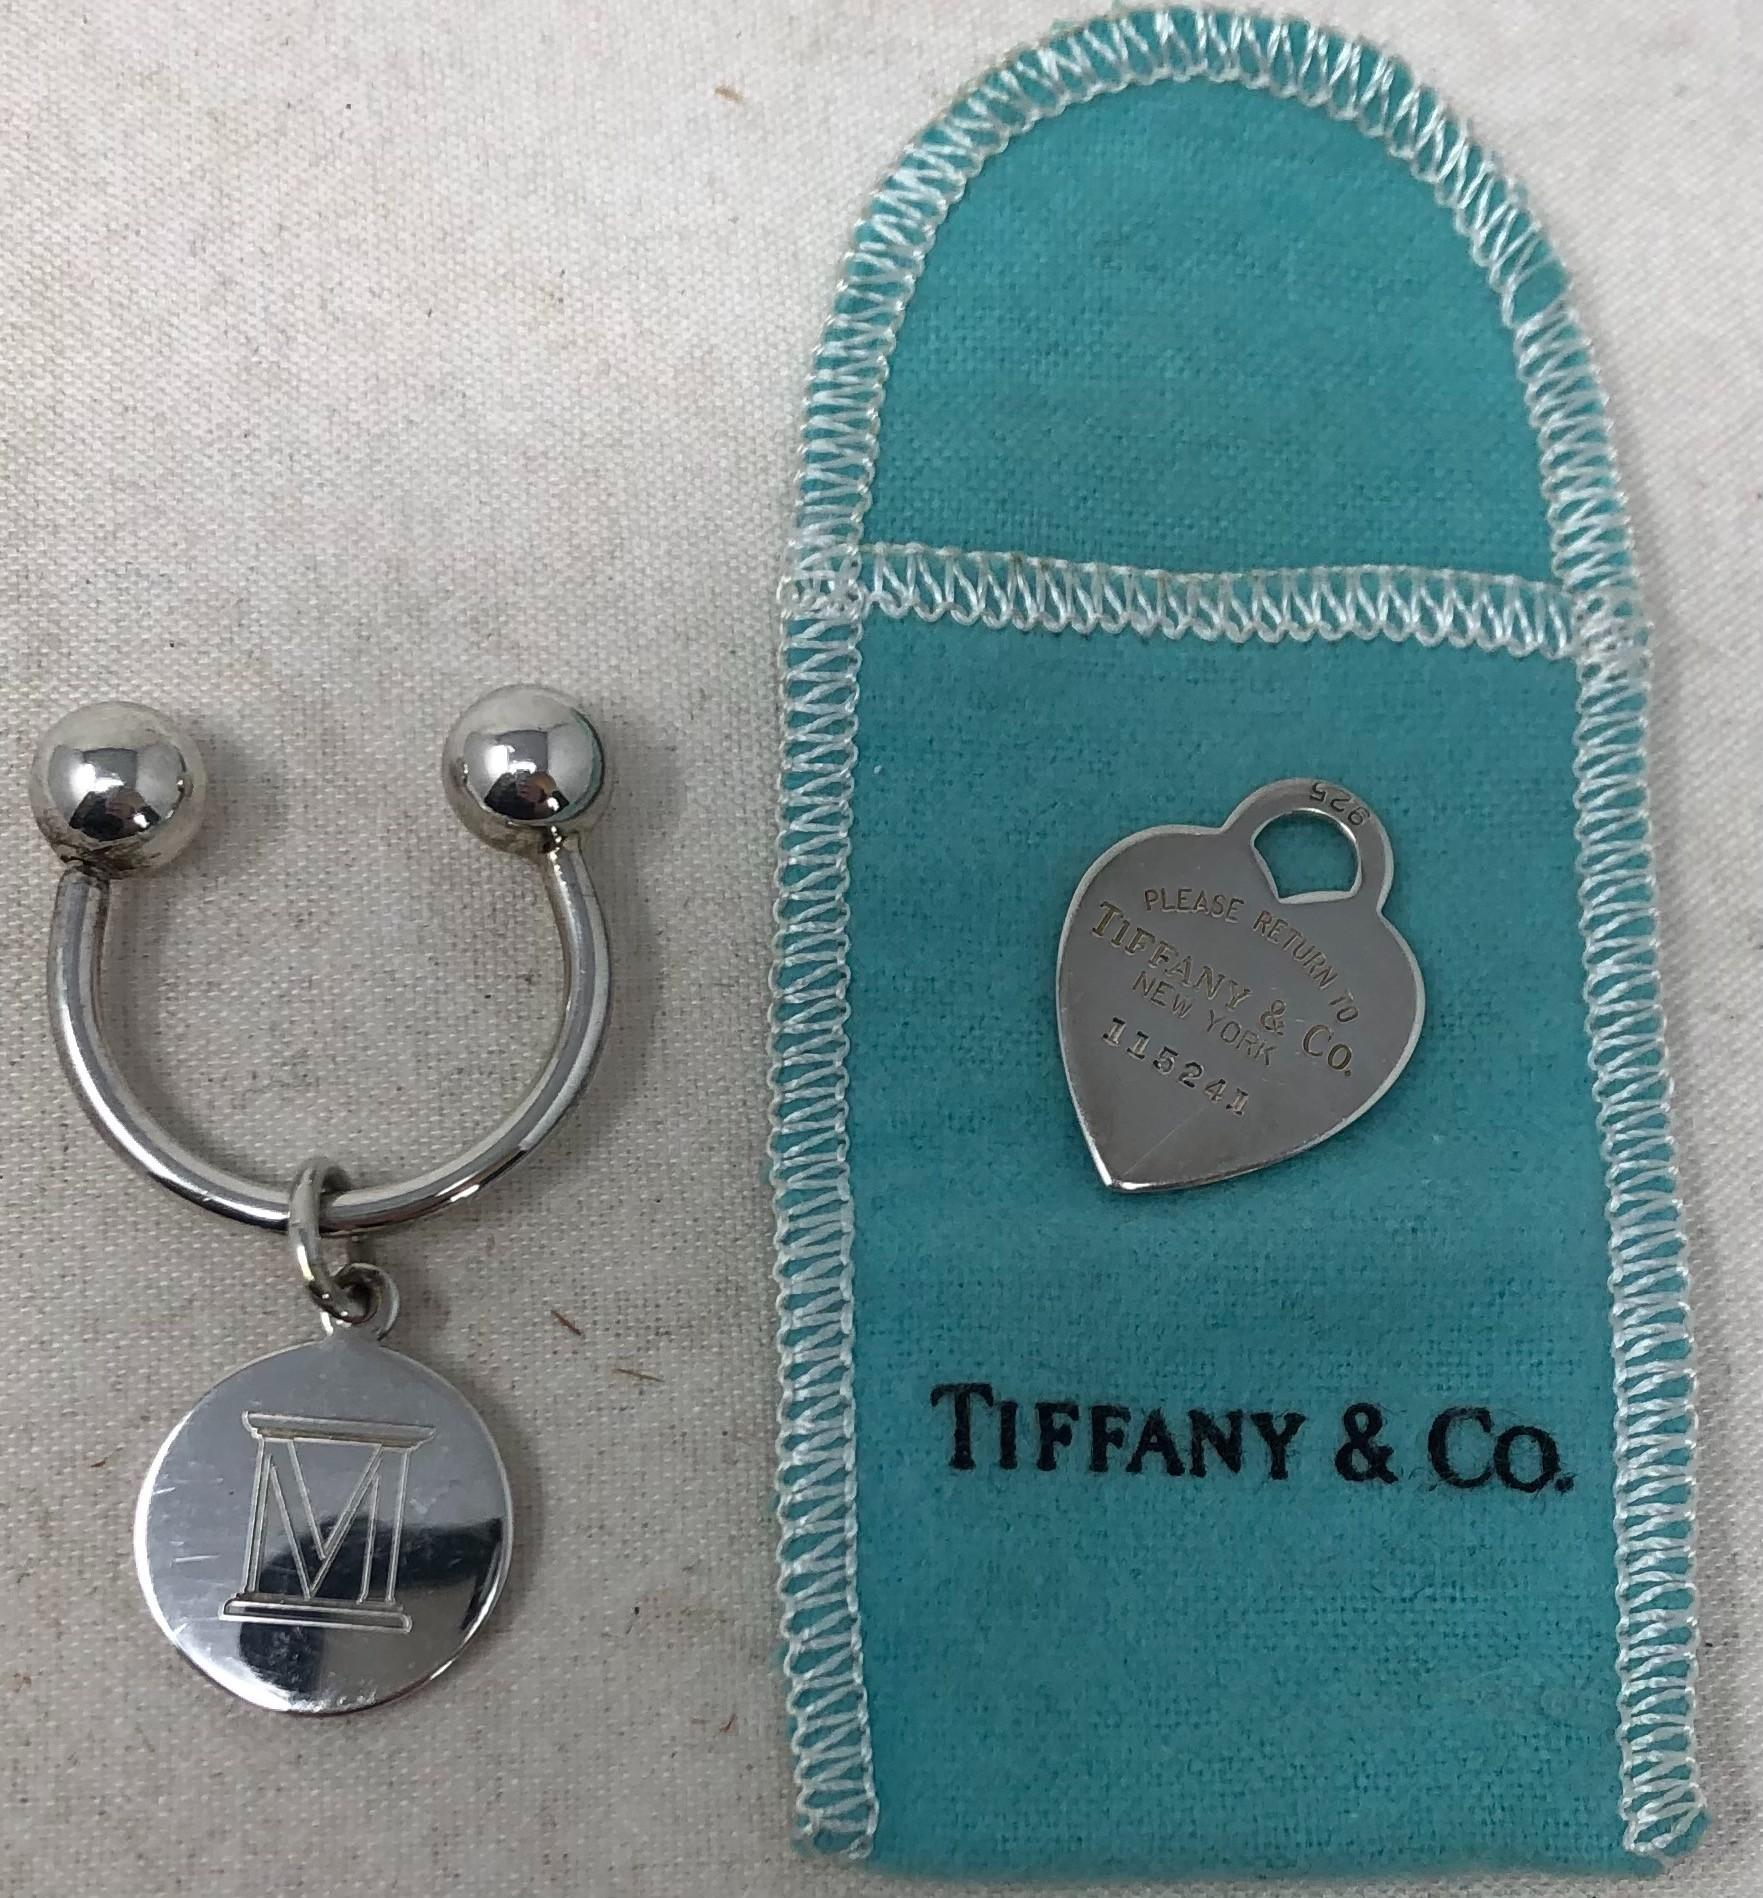 Tiffany sterling silver heart charm and key ring with Metropolitan Museum commemorative 90 year anniversary charm.